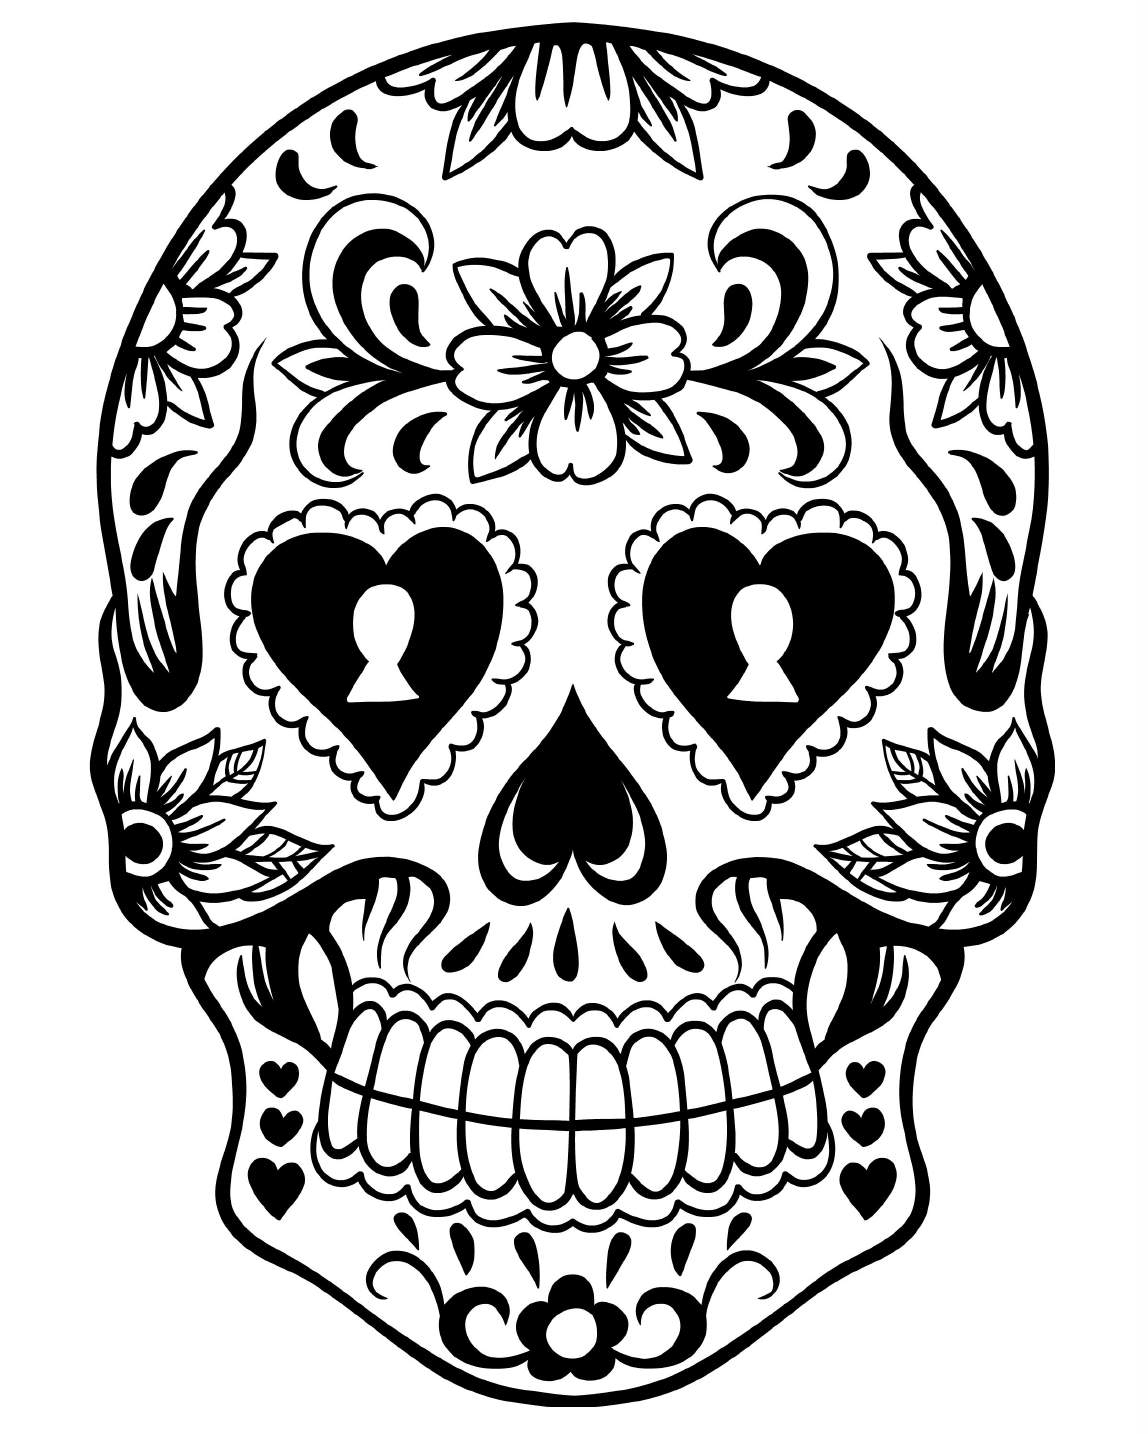 day of the dead skull coloring page sugar skulls day of the dead calavera coloring pages printable dead coloring day the of page skull